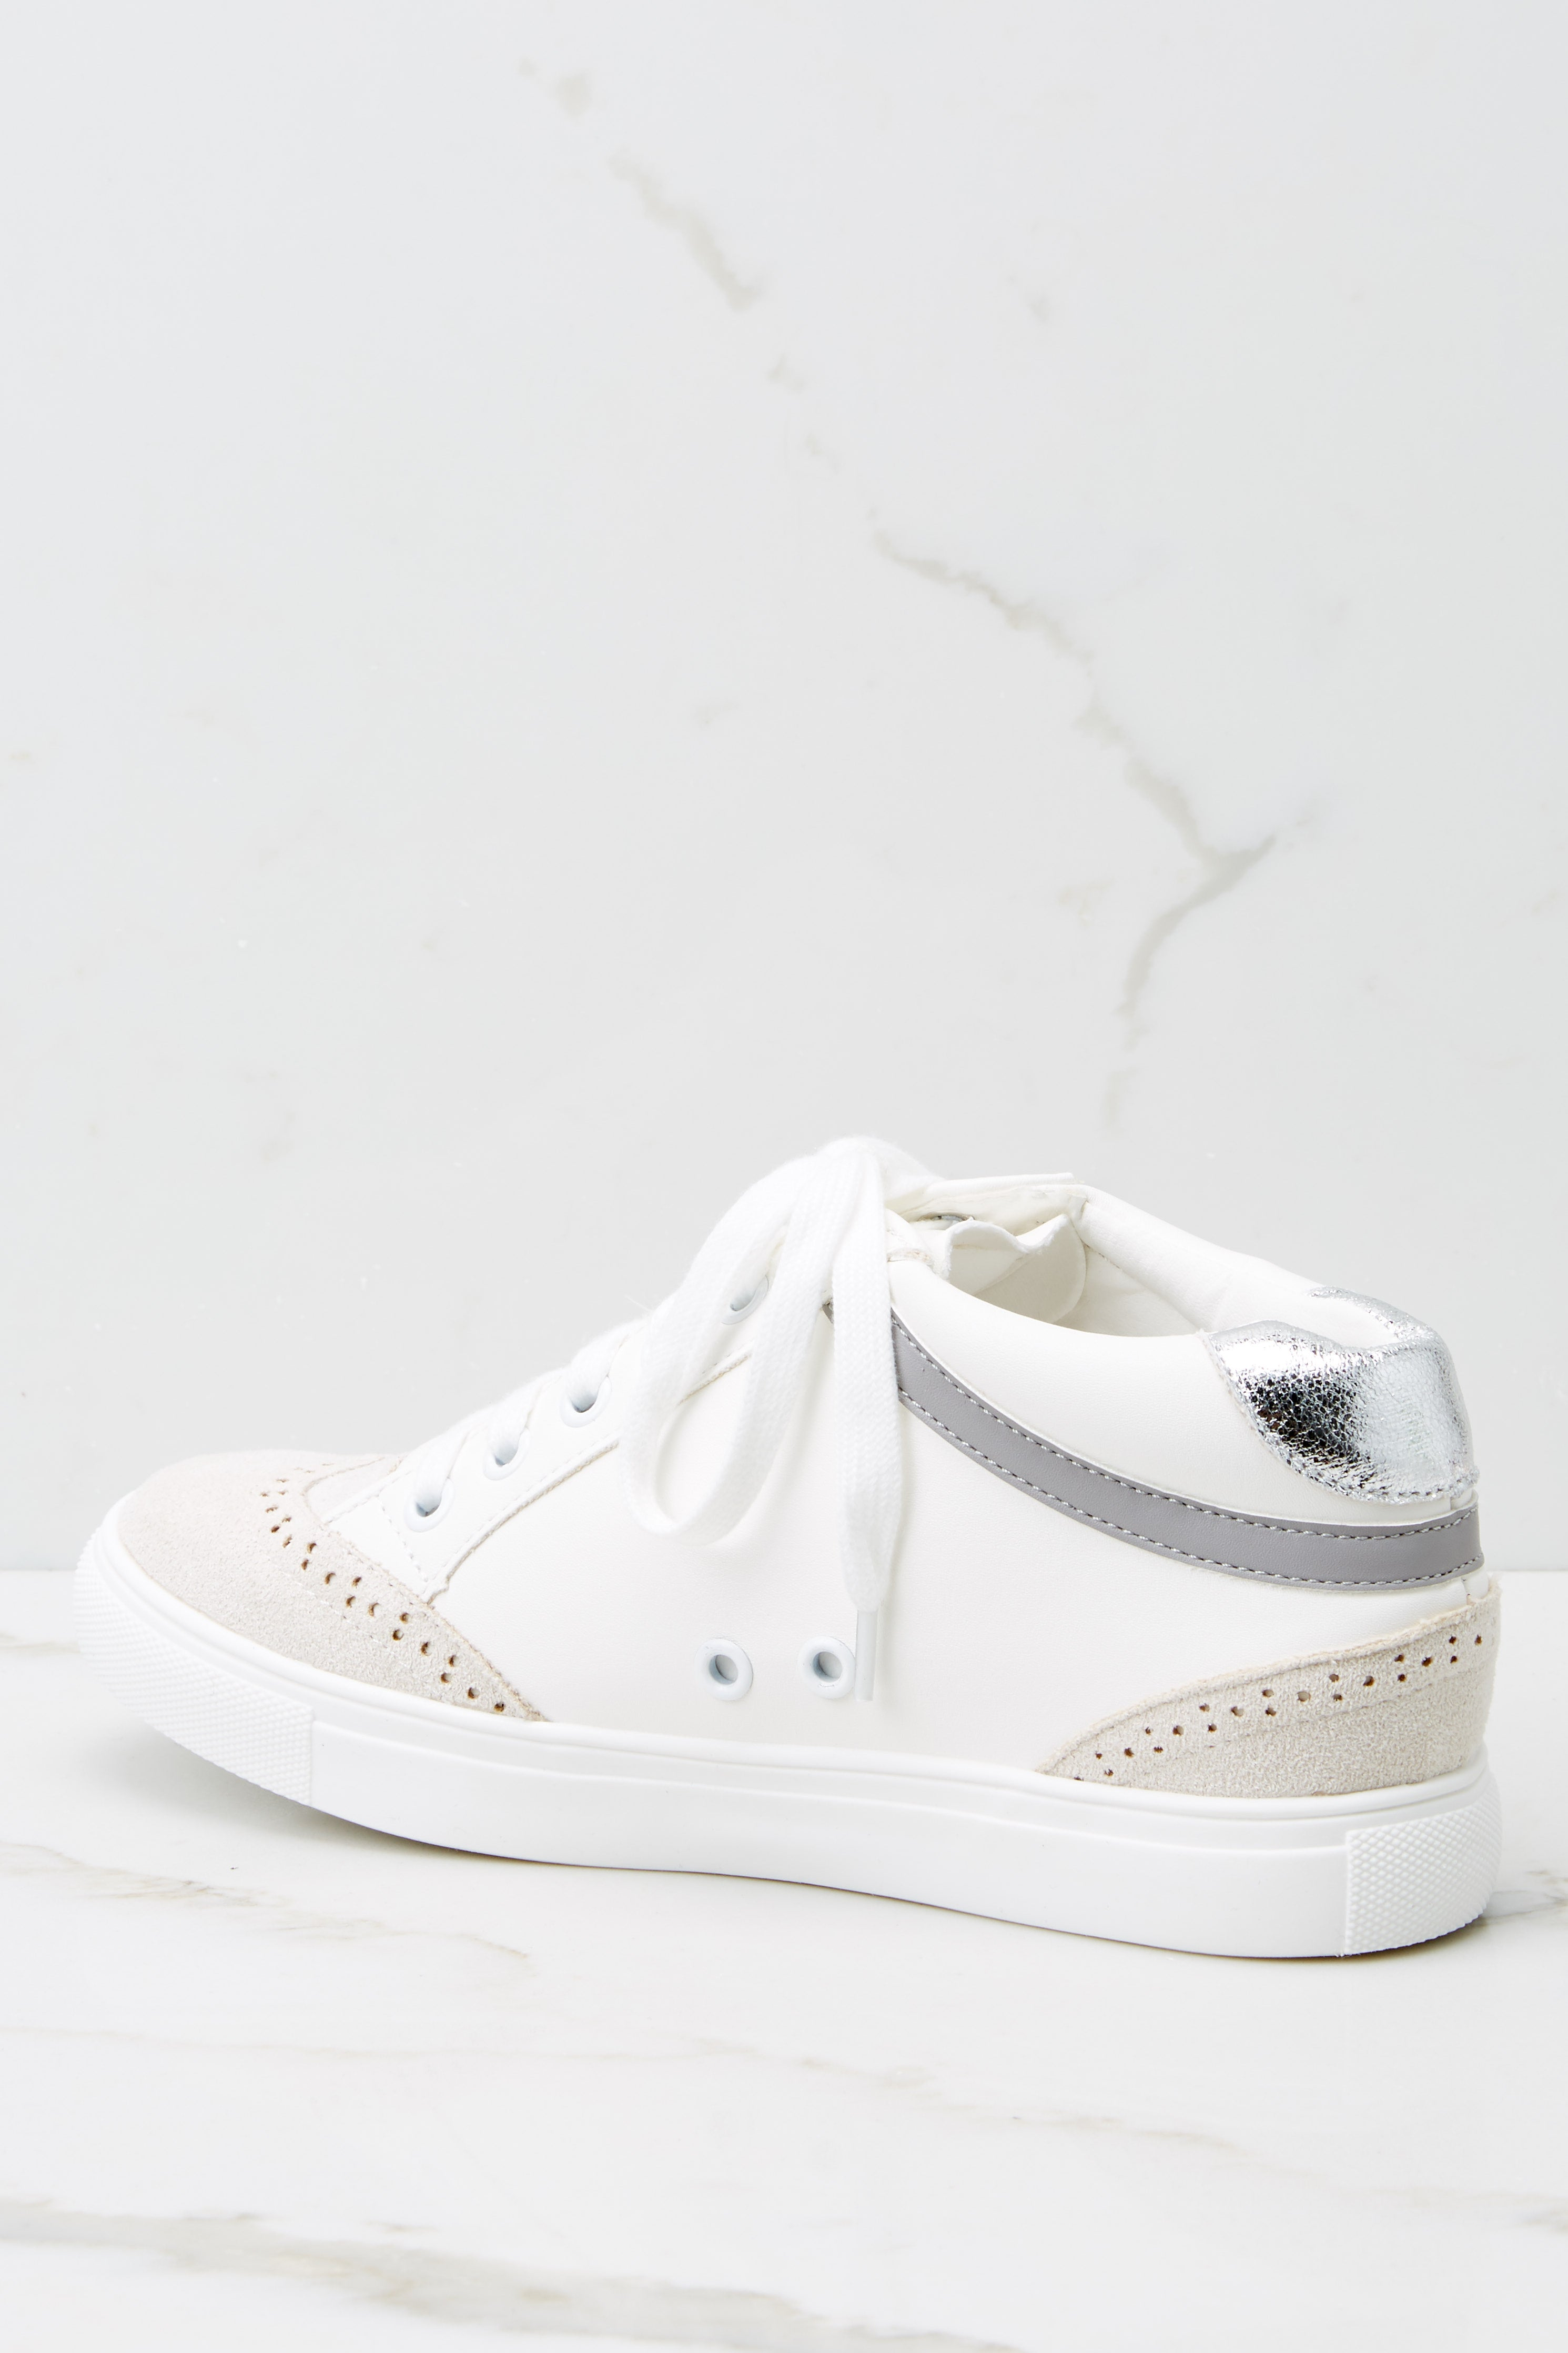 5 Jump Around White And Silver Mid-Top Sneakers at reddress.com